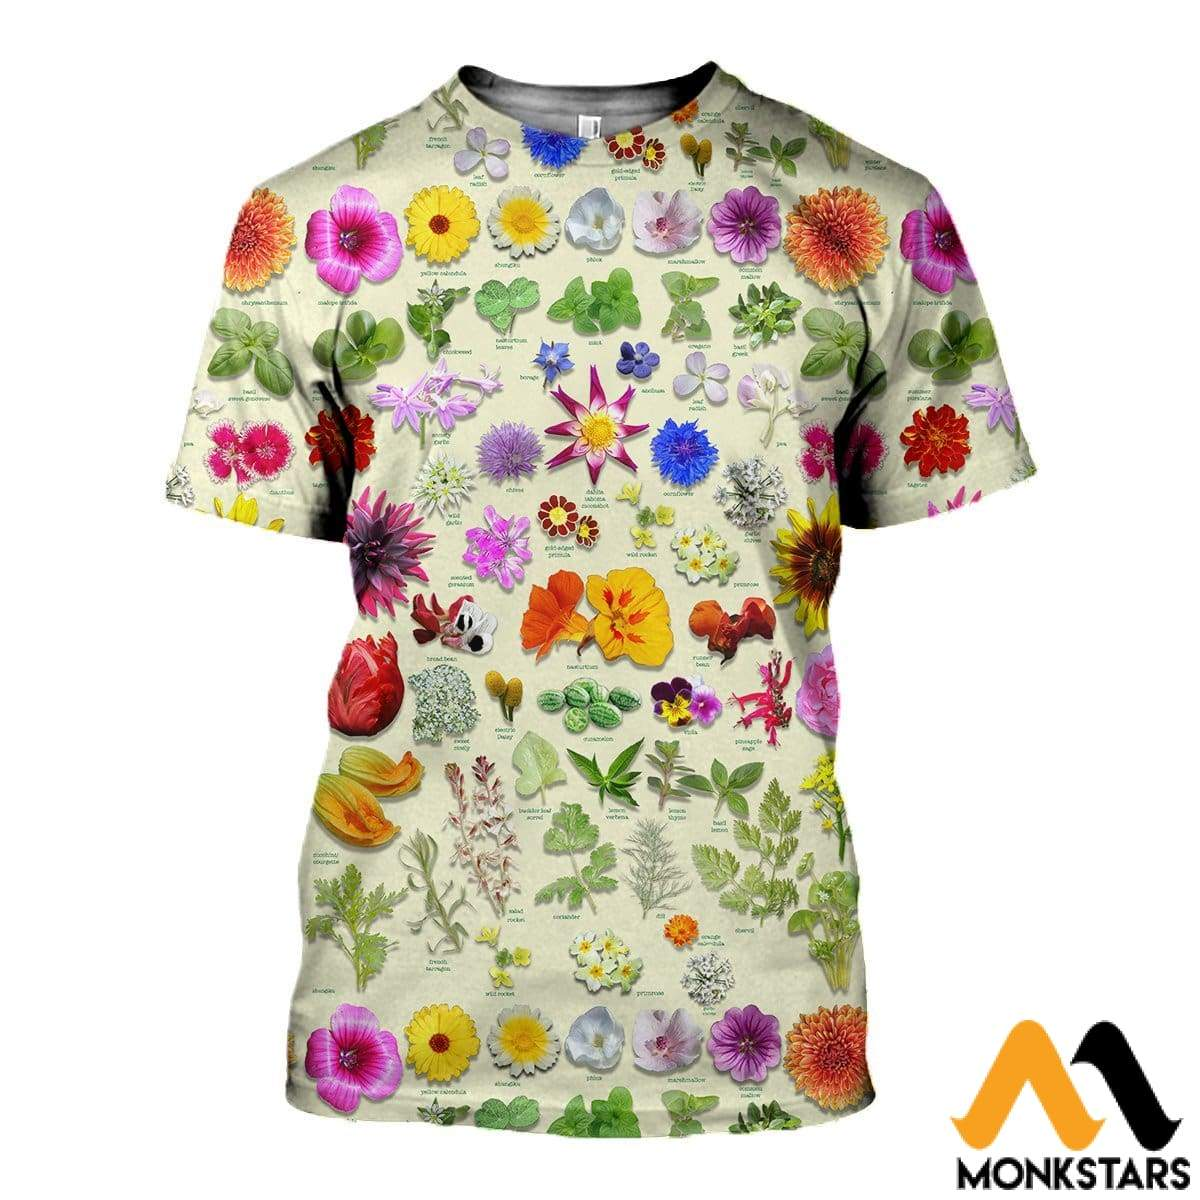 3D All Over Printed Edible Flower Garden Shirts And Shorts T-Shirt / Xs Clothes